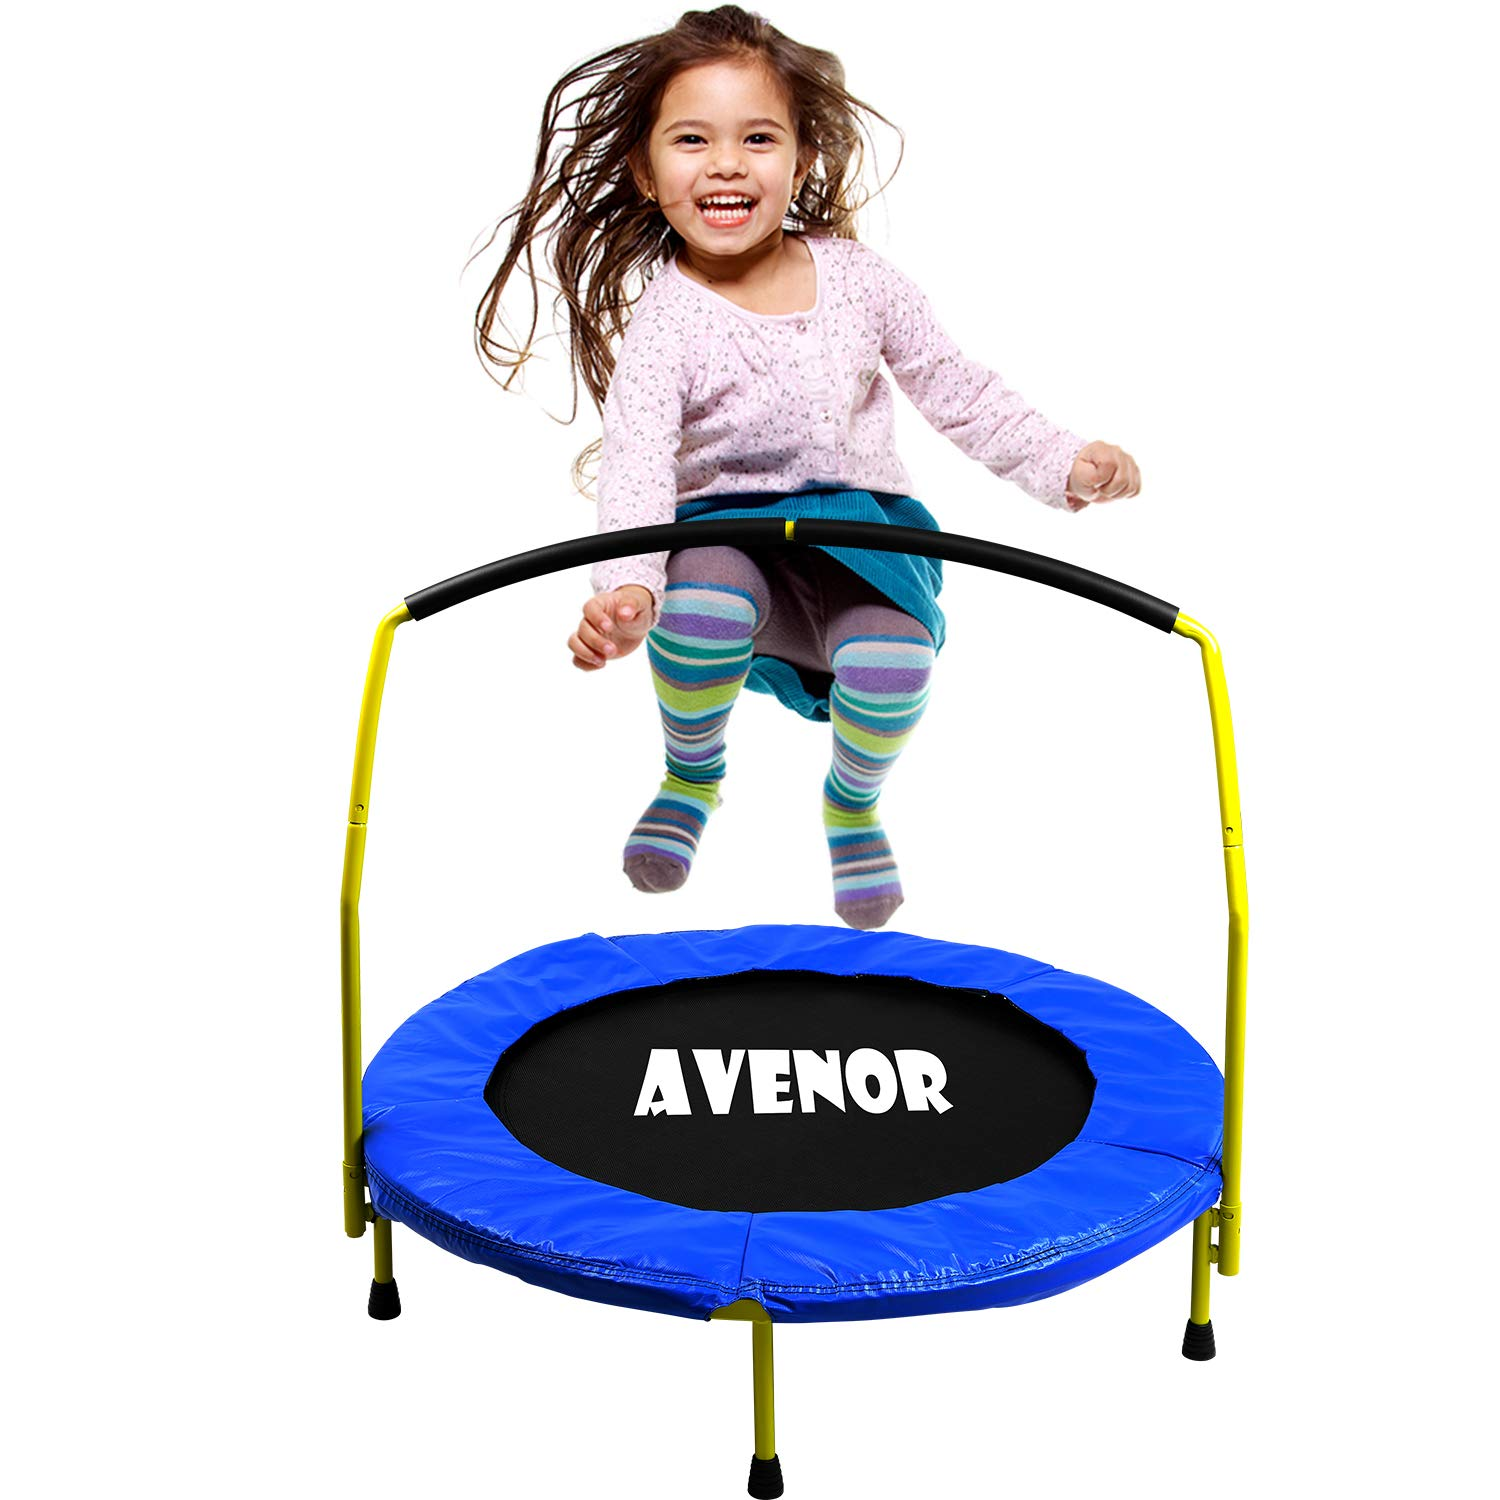 Toddler Trampoline With Handle - 36'' Kids Trampoline With Handle - Mini Trampoline w/ Sturdy Frame, Coil Spring, Safety Padded Cover -Heavy Duty Mini Trampoline Indoor Outdoor Toddler Trampoline